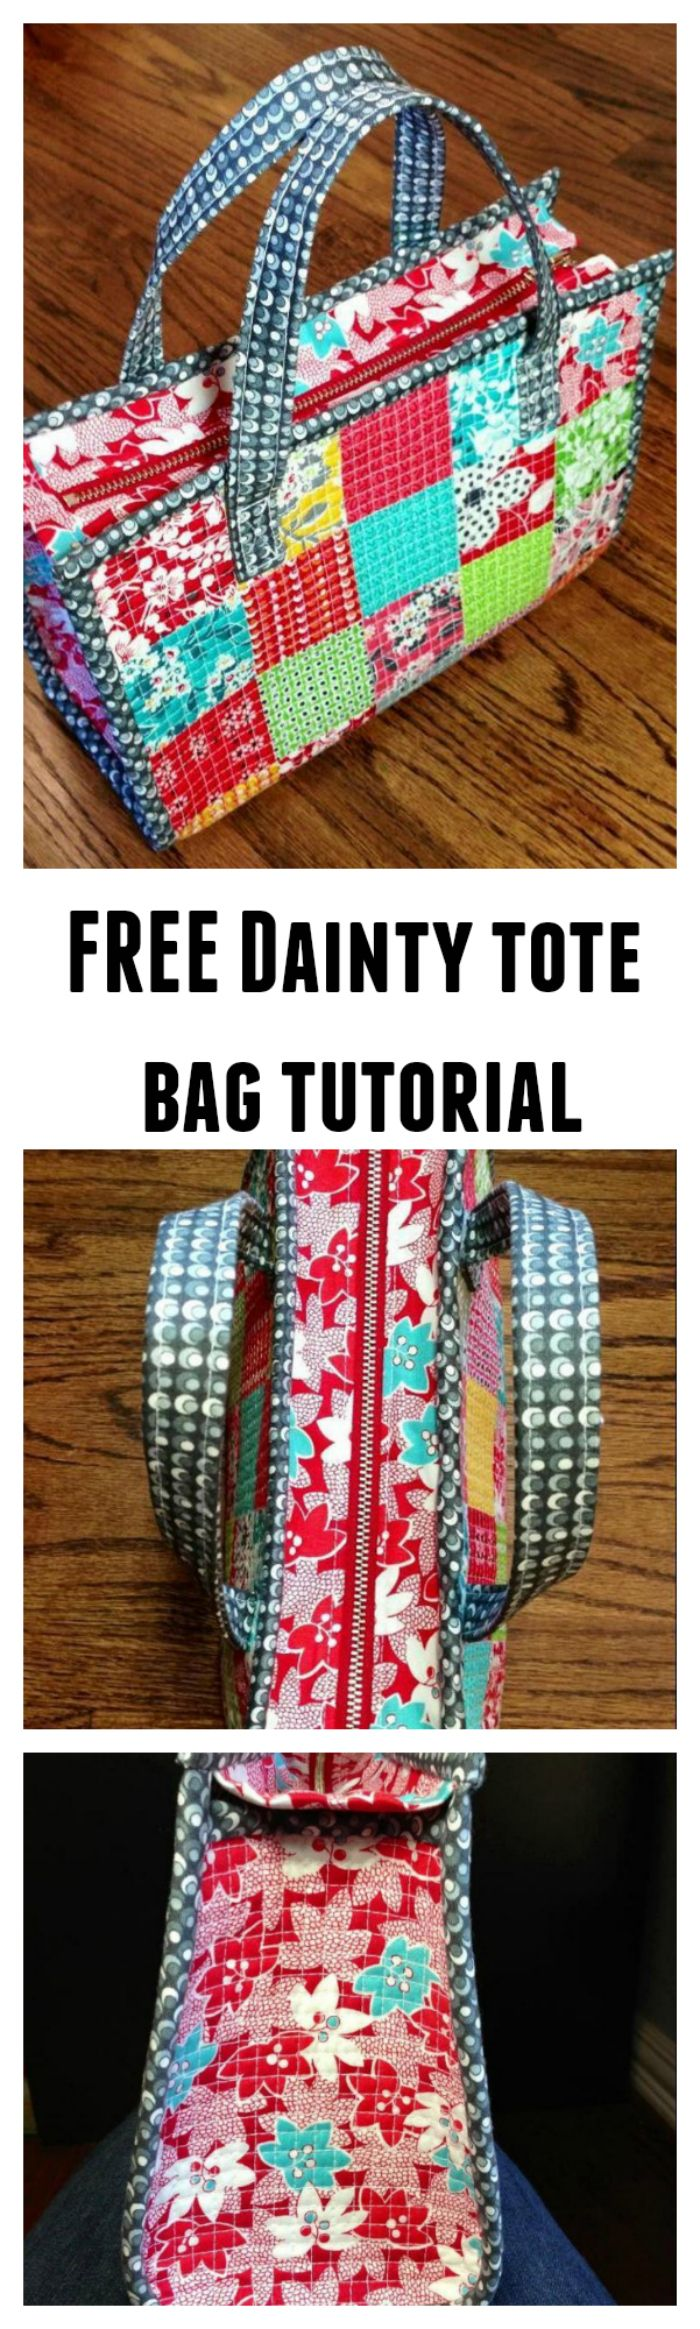 Try this FREE pattern of the Dainty tote bag. This beautiful FREE pattern needs basic sewing skills so why not give it a go.